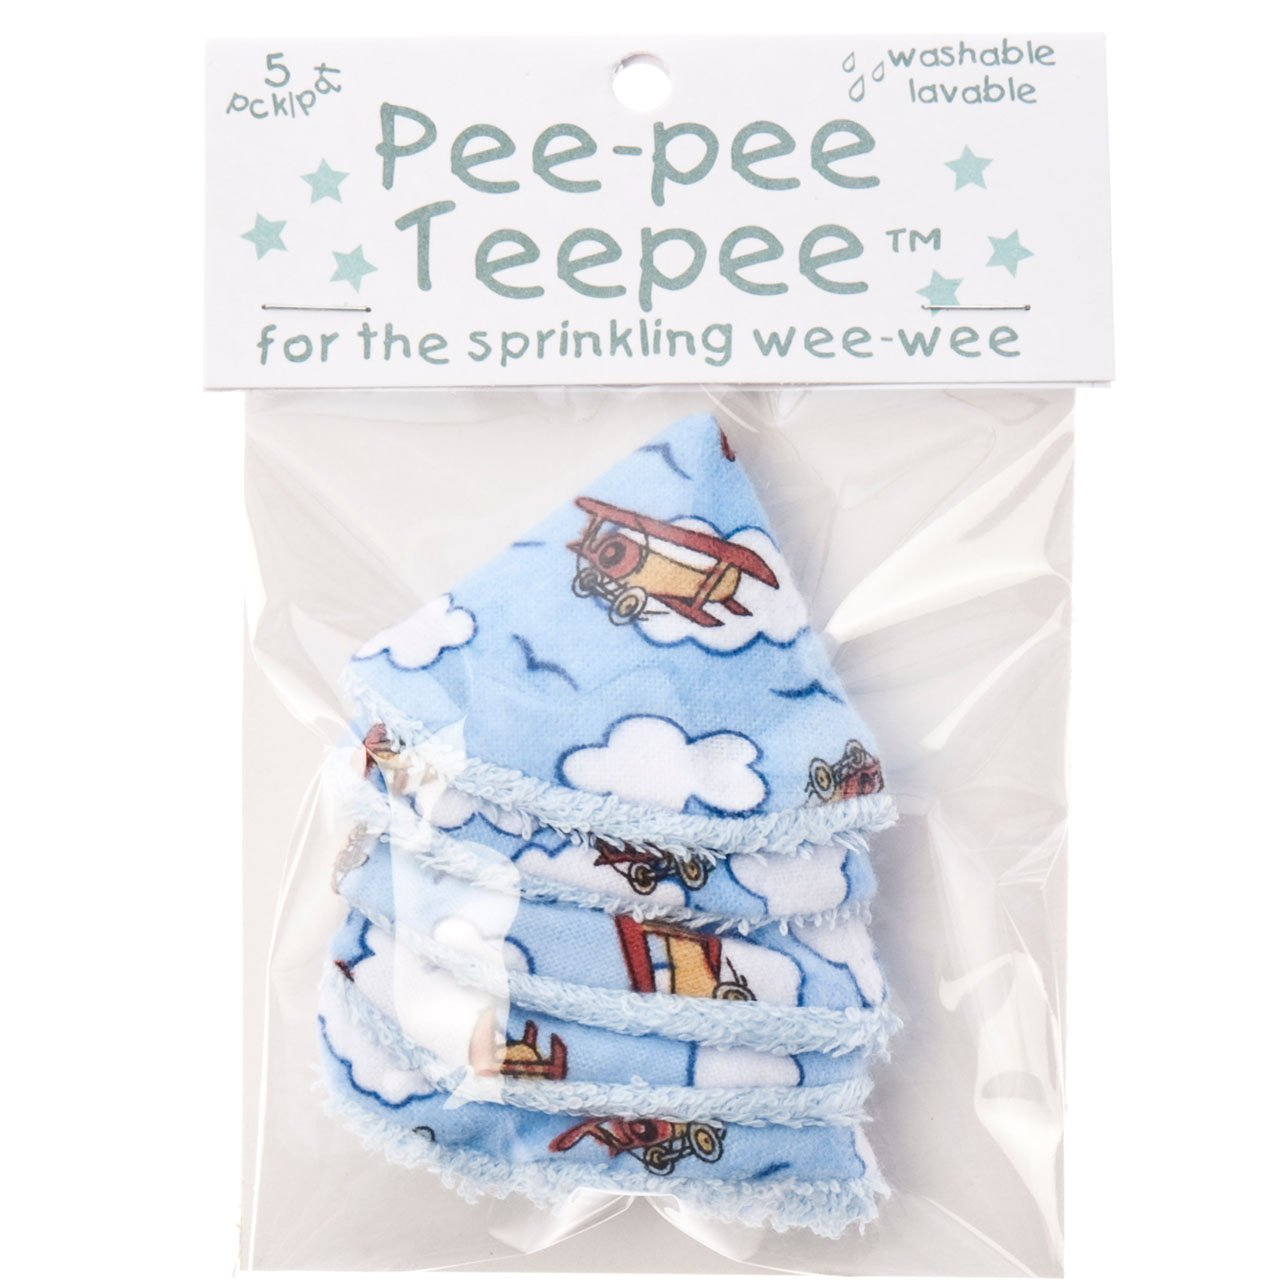 Amazon.com  The Peepee Teepee for the Sprinkling WeeWee 5 Airplanes in Cellophane Bag  Cloth Baby Diapers  Baby  sc 1 st  Amazon.com & Amazon.com : The Peepee Teepee for the Sprinkling WeeWee: 5 ...